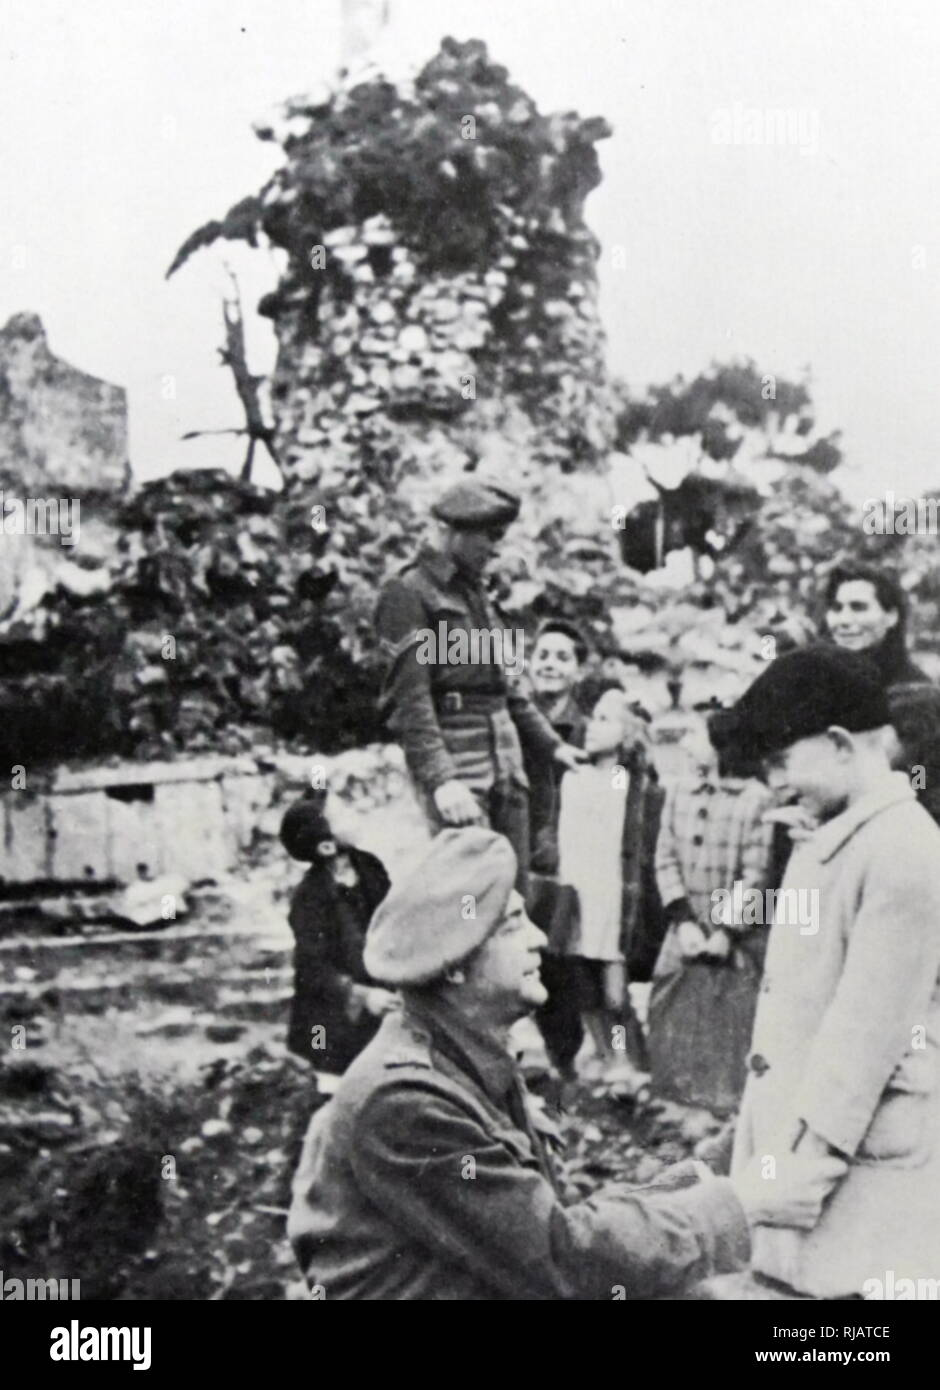 Jewish Holocaust survivors in Italy meeting soldiers from the Jewish Brigade (Jewish soldiers from Palestine, serving in the British Army).  1945 - Stock Image